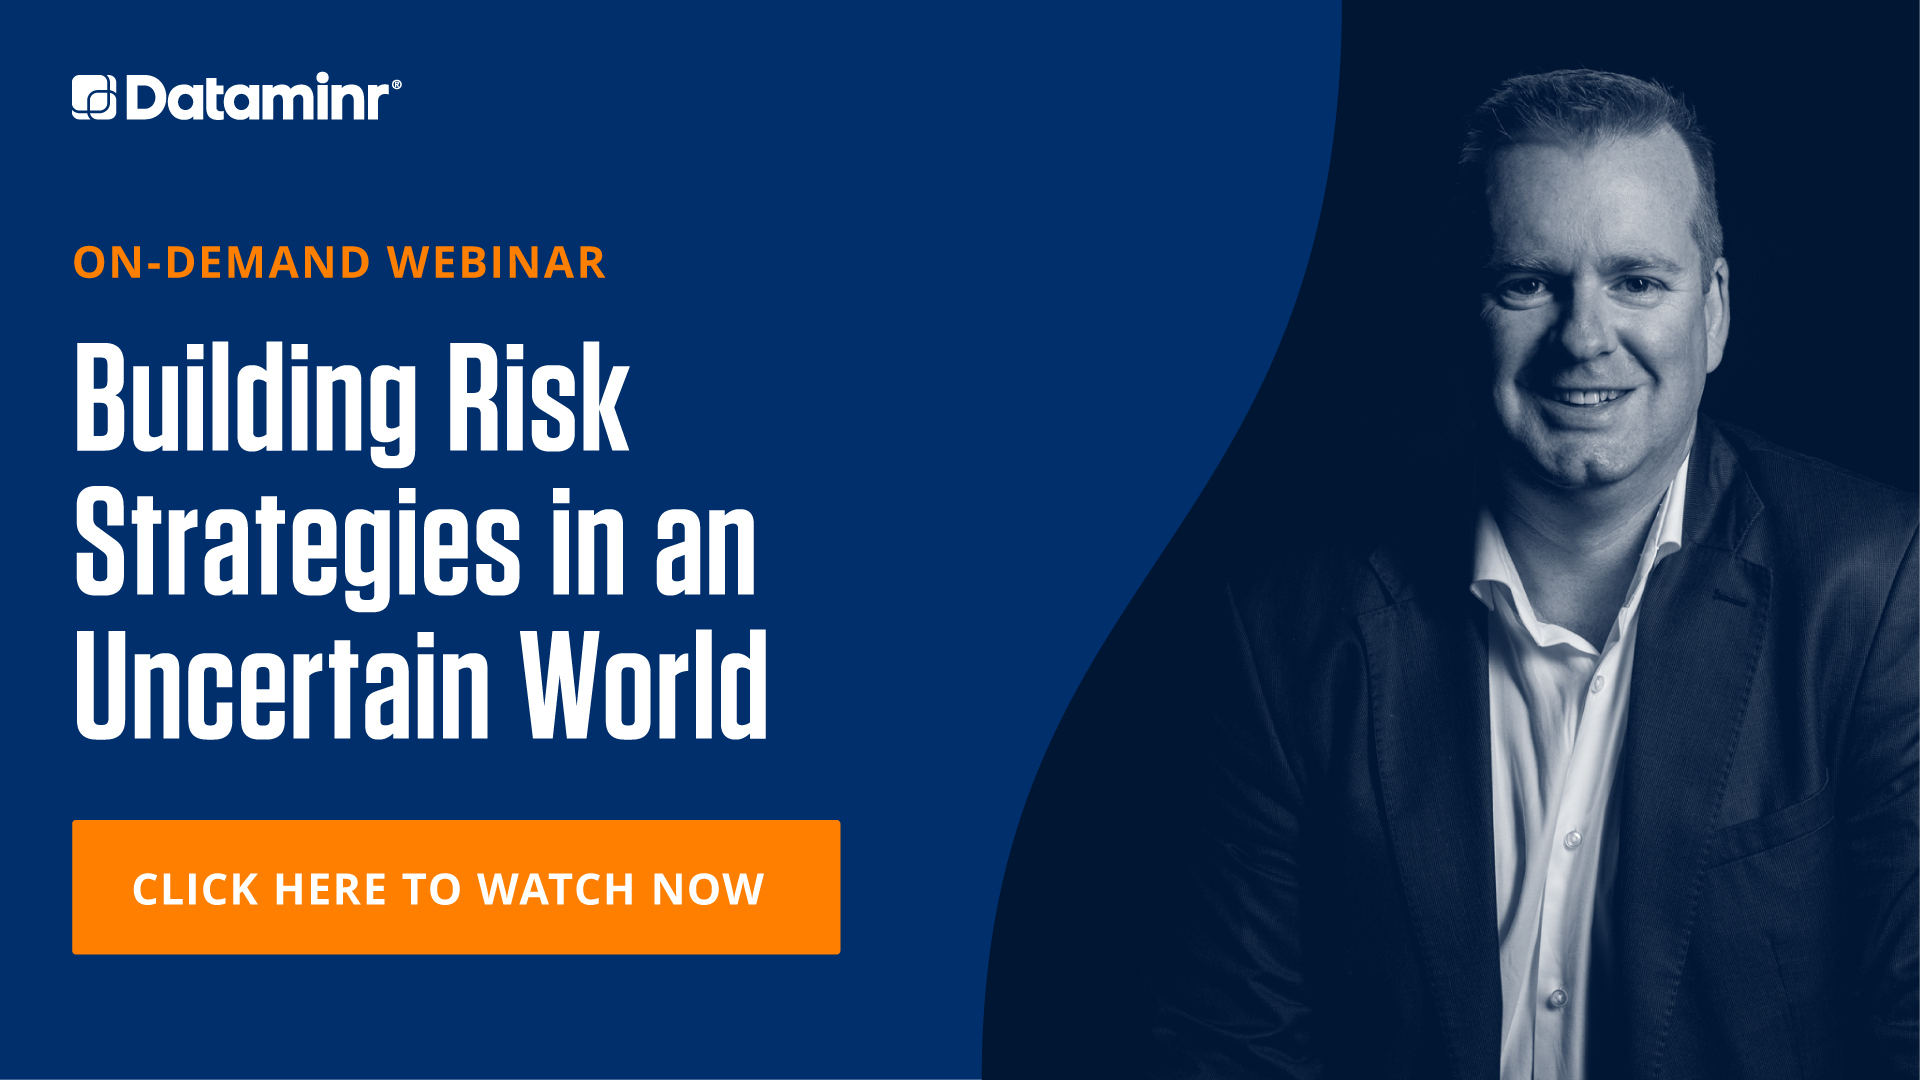 [Dataminr Live Panel Discussion] Building Risk Strategies in an Uncertain World